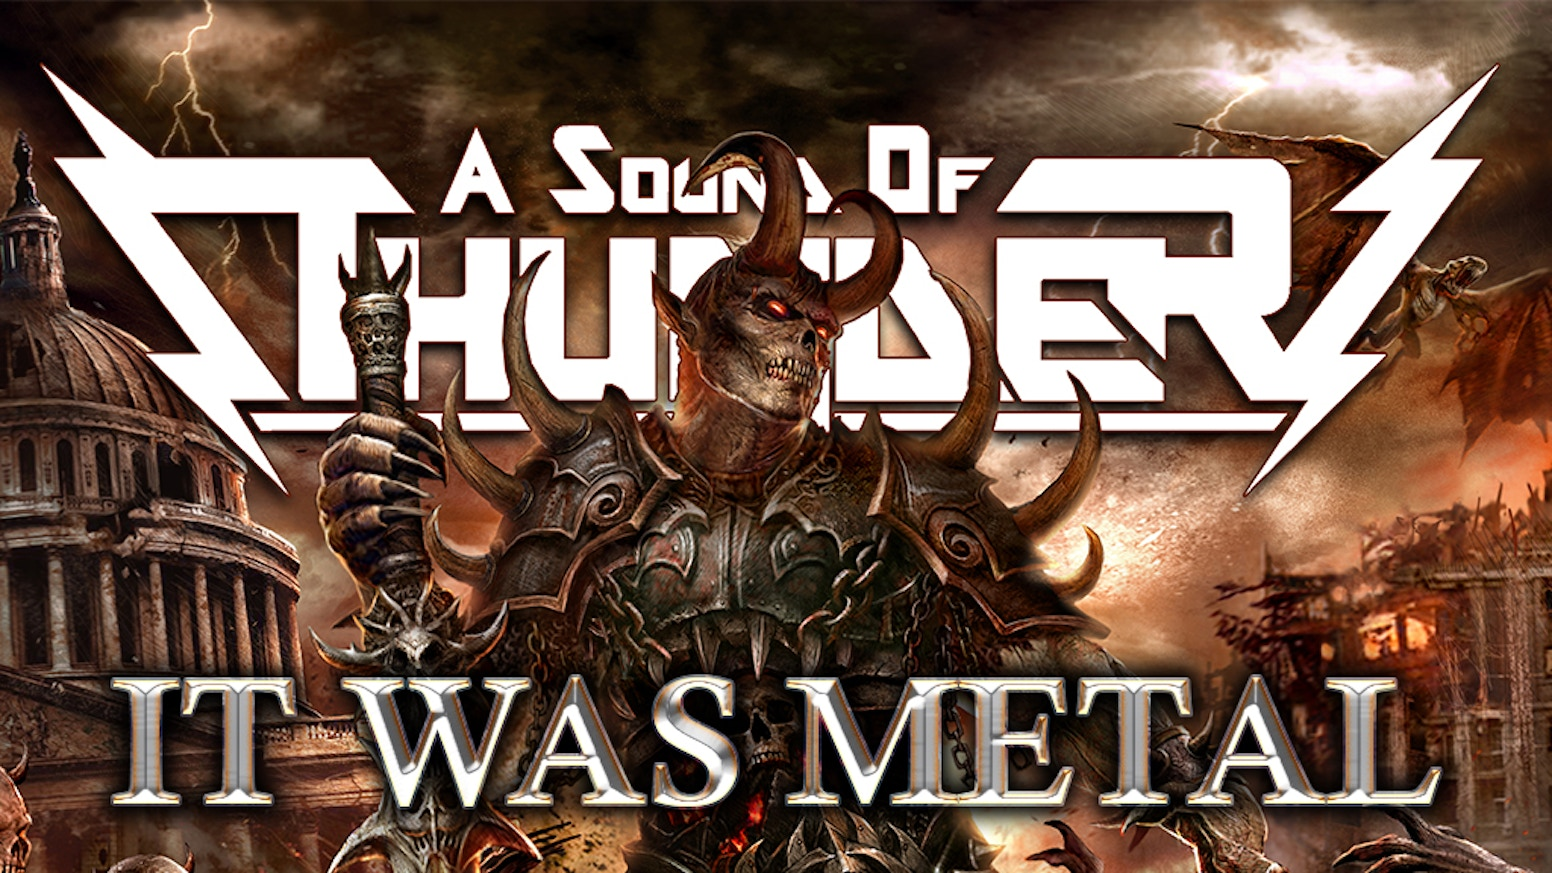 IT WAS METAL is a comic anthology and a metal album. Each of the ten stories in the anthology is based on a song from the album.